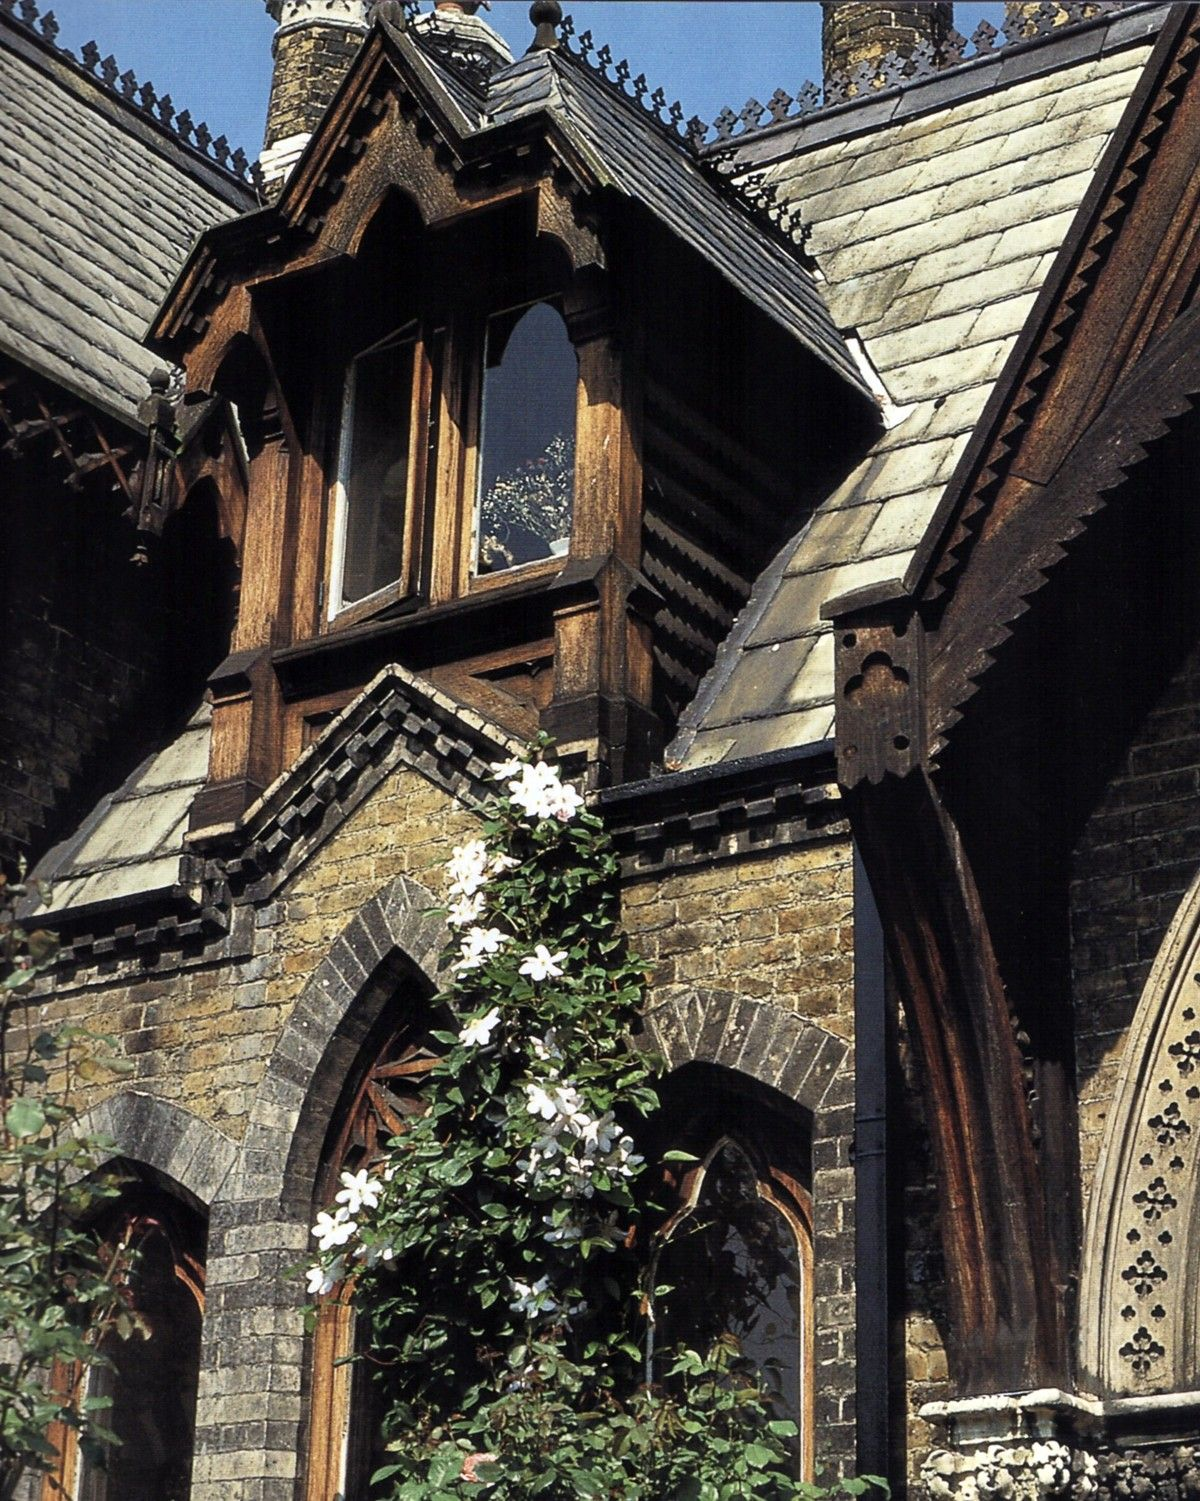 The Stunning Facade Of A Rustic Gothic Revival Home